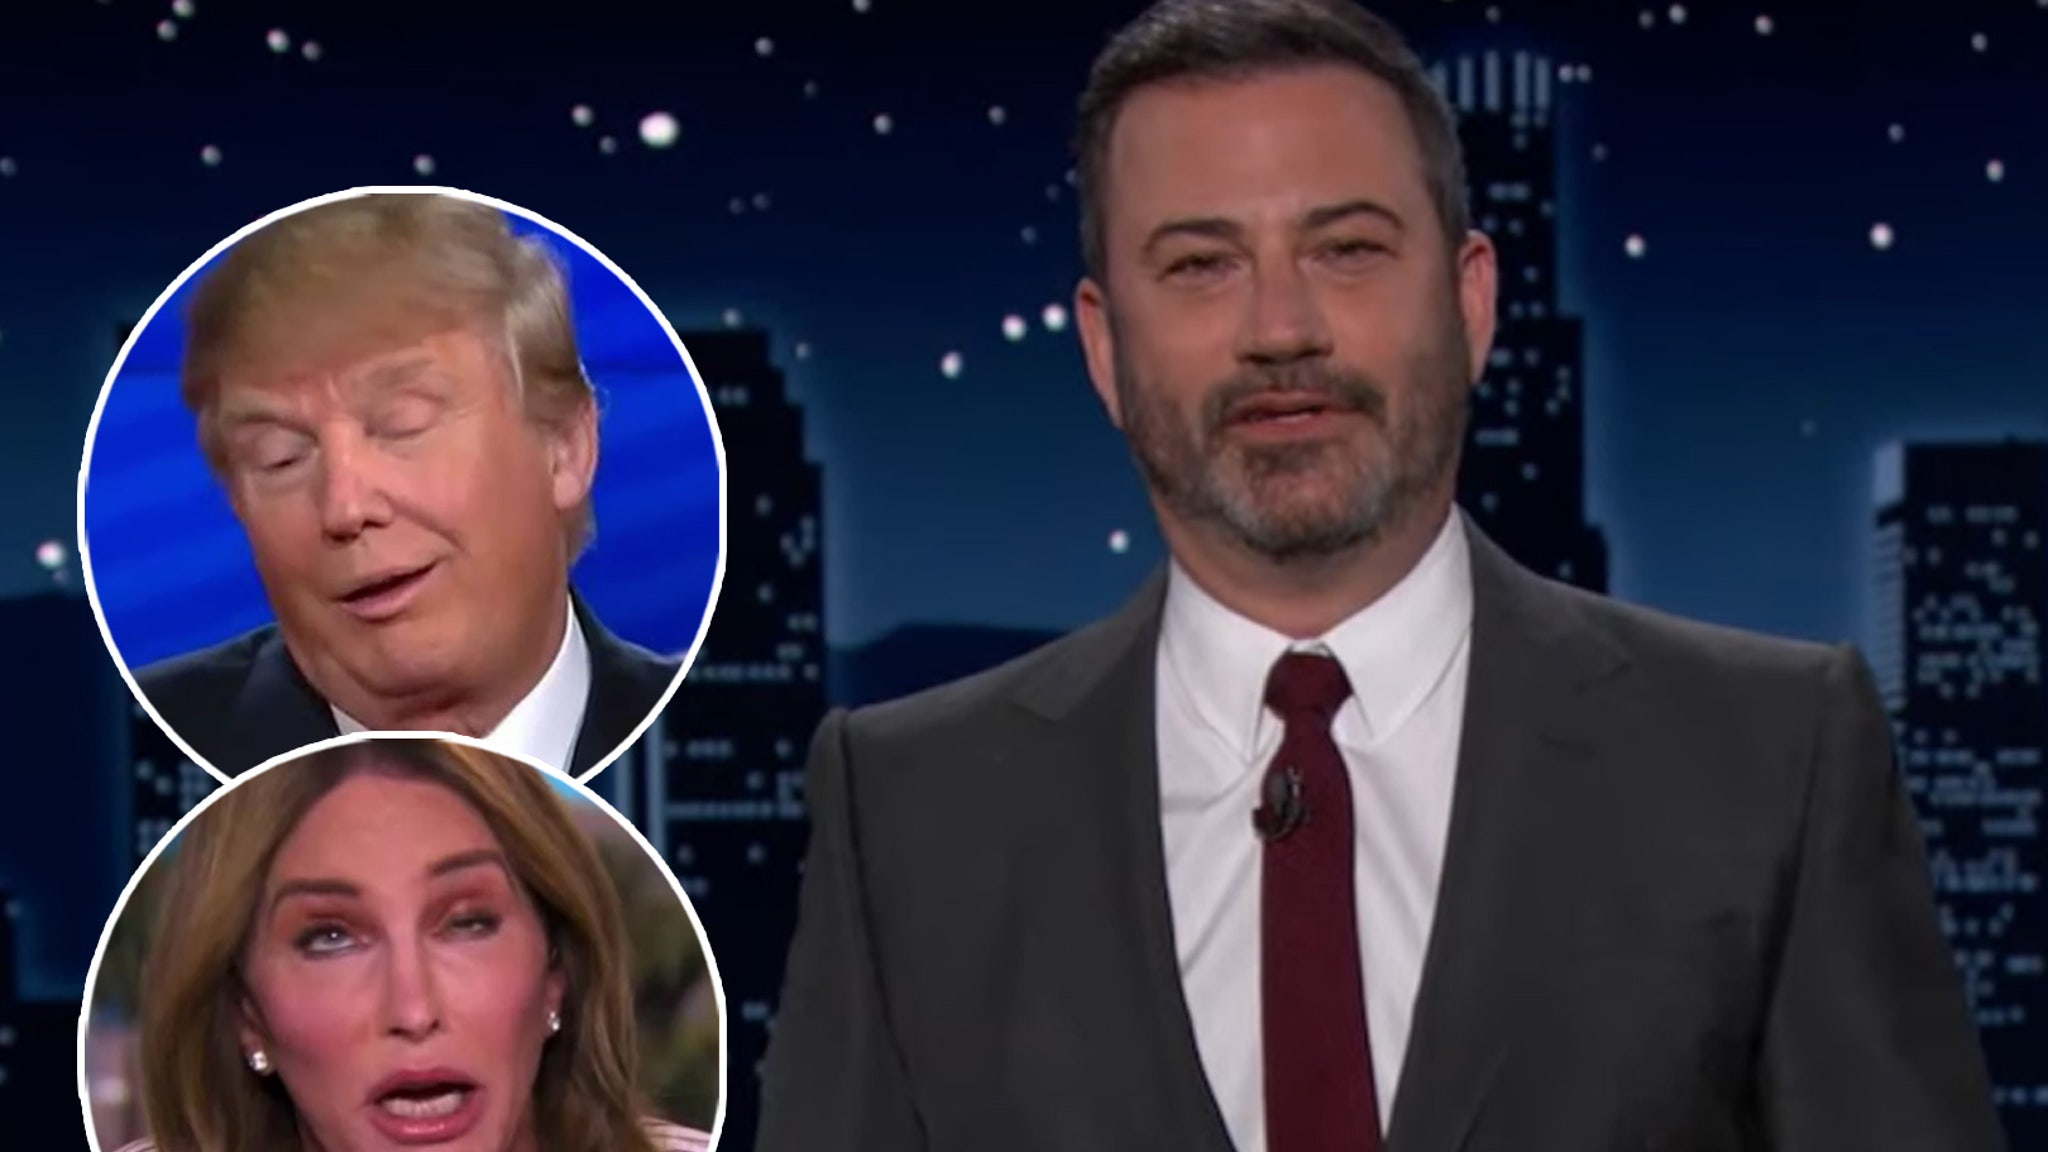 Caitlyn Jenner Strikes Back After Jimmy Kimmel Brands His 'Trump In A Wig'